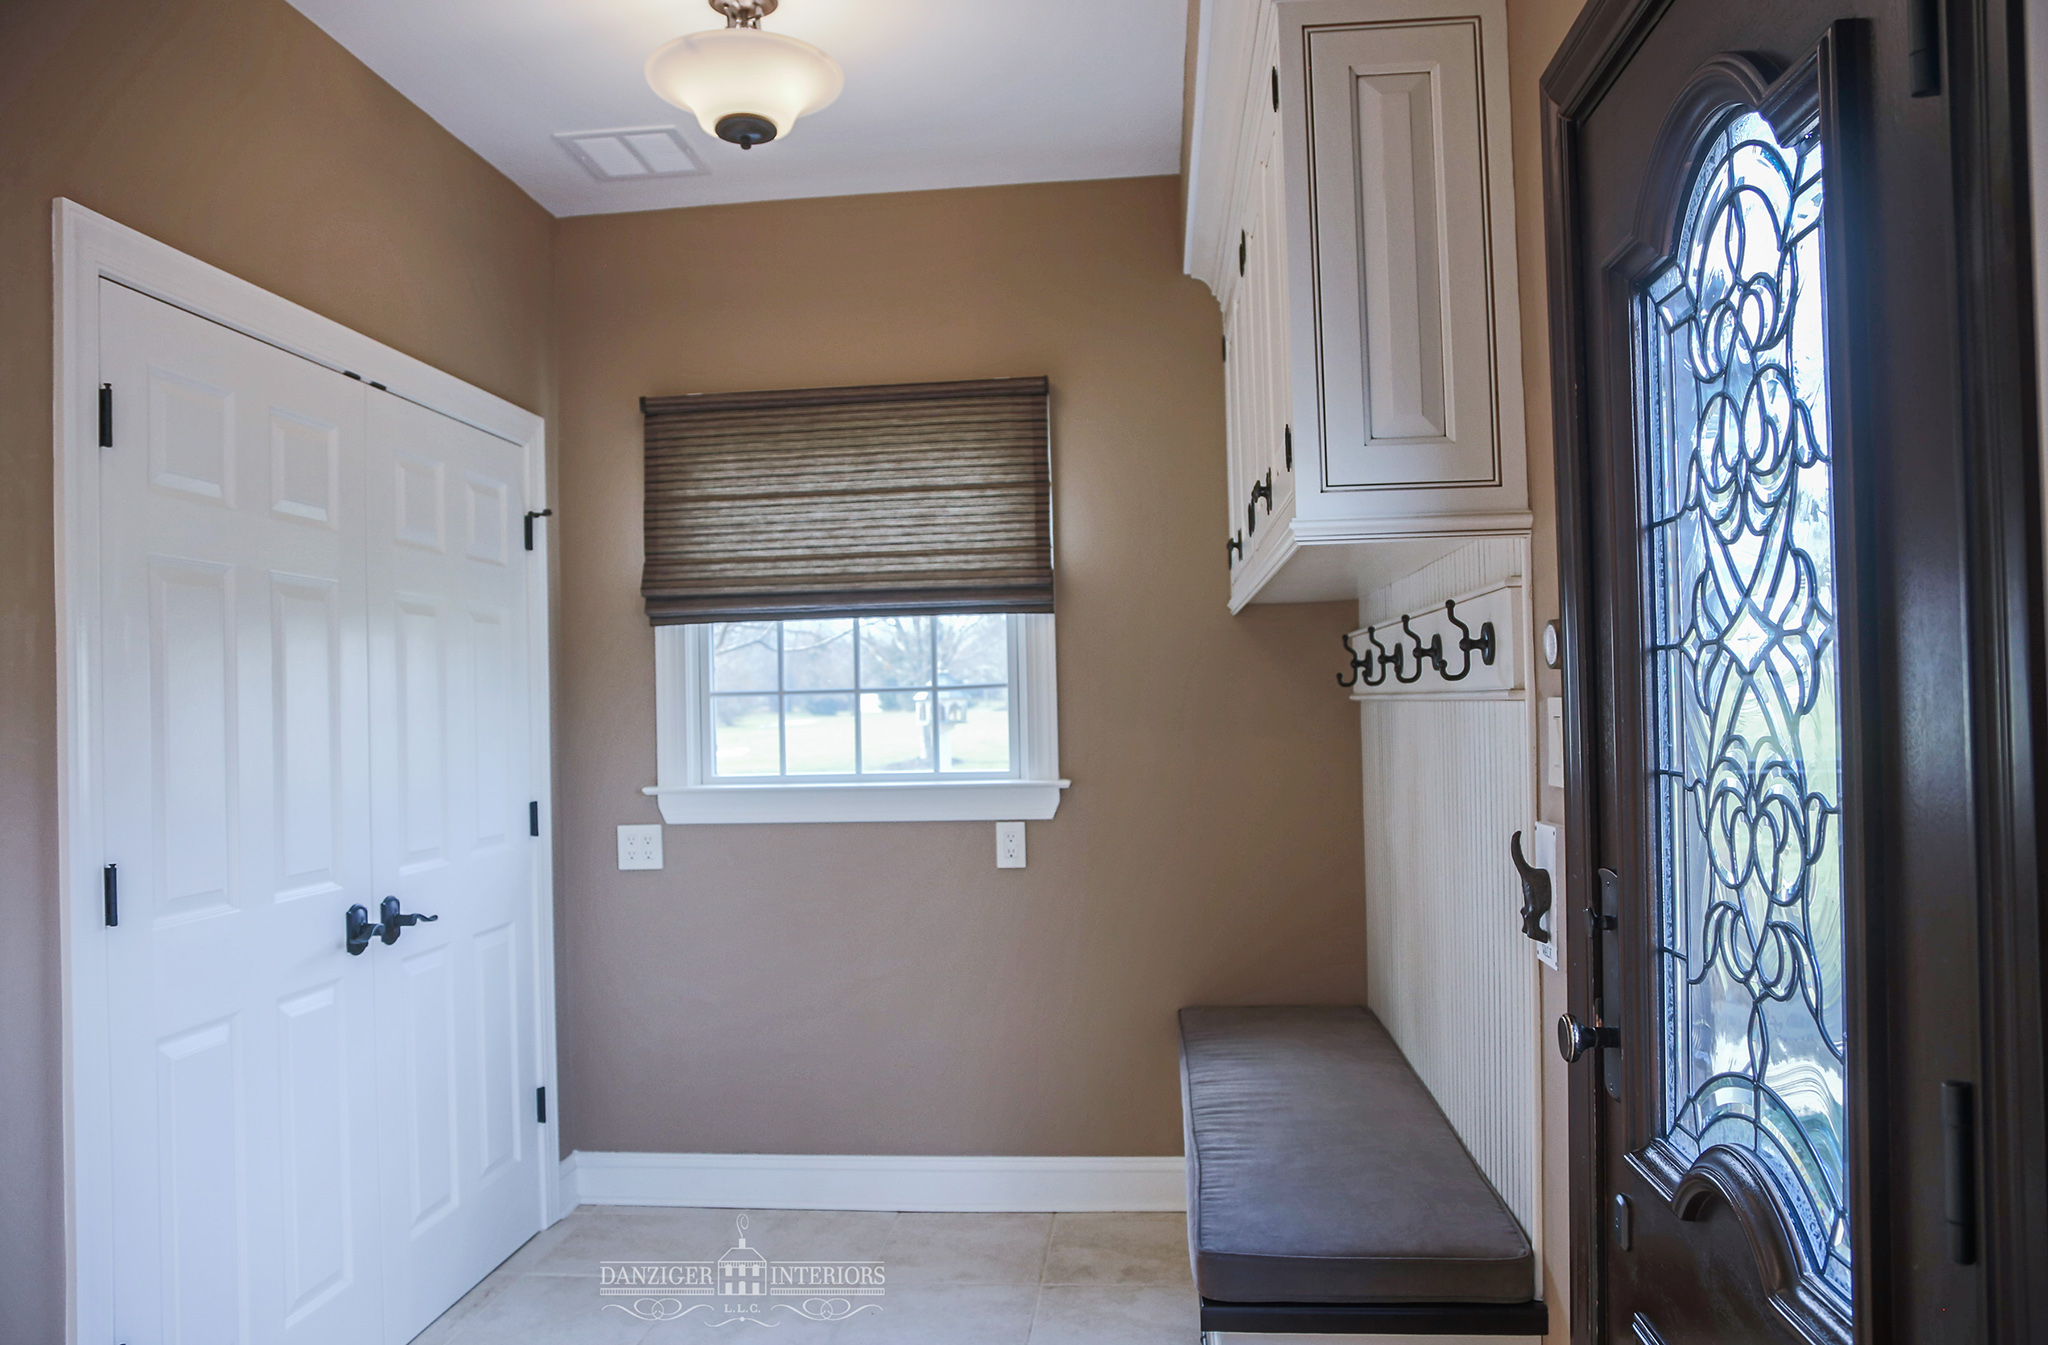 Decorative finished side panel adds a finished look to this beautiful and functional space.